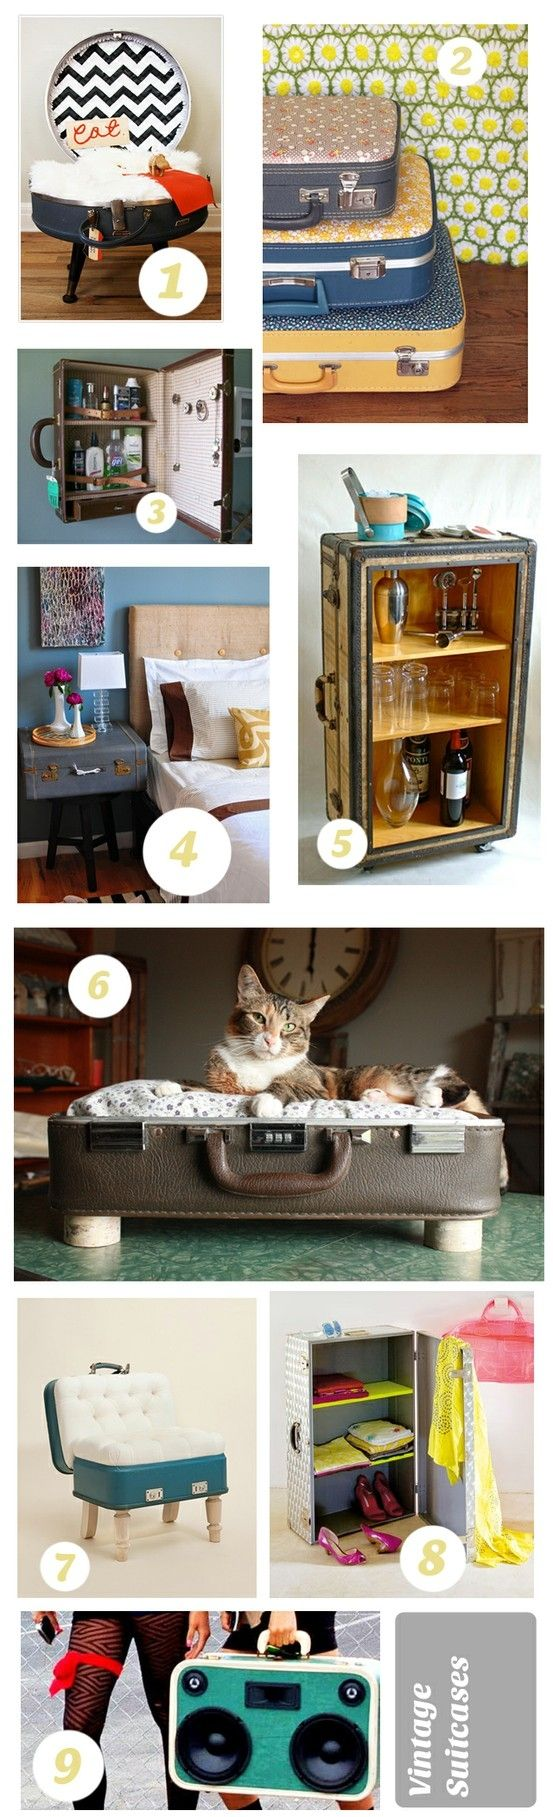 ideas for Old Suitcase Vintage Luggage | Some really cute Vintage Suitcase ideas! by Margita Bombjaková